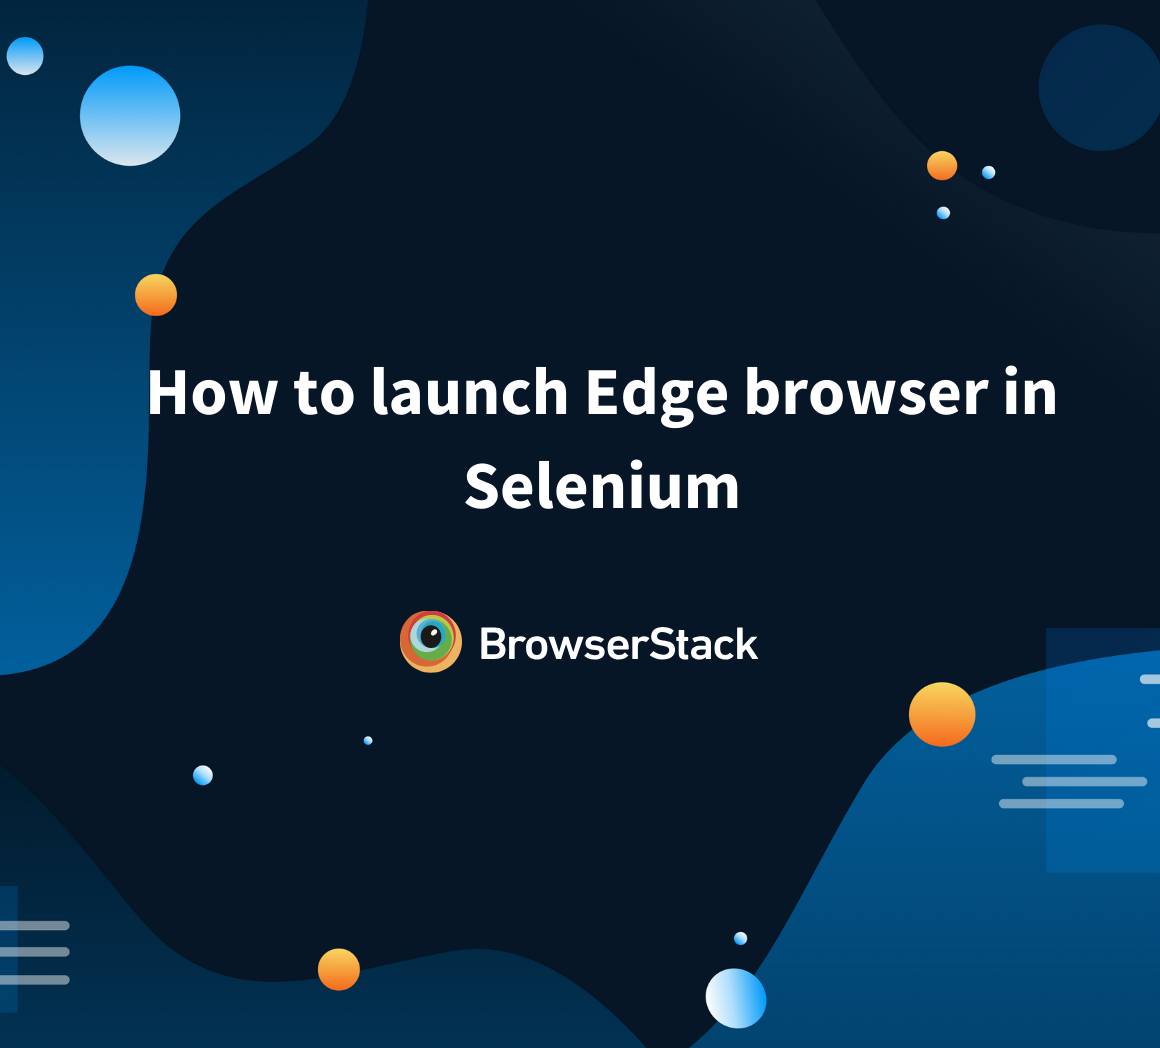 How to launch Edge browser in Selenium